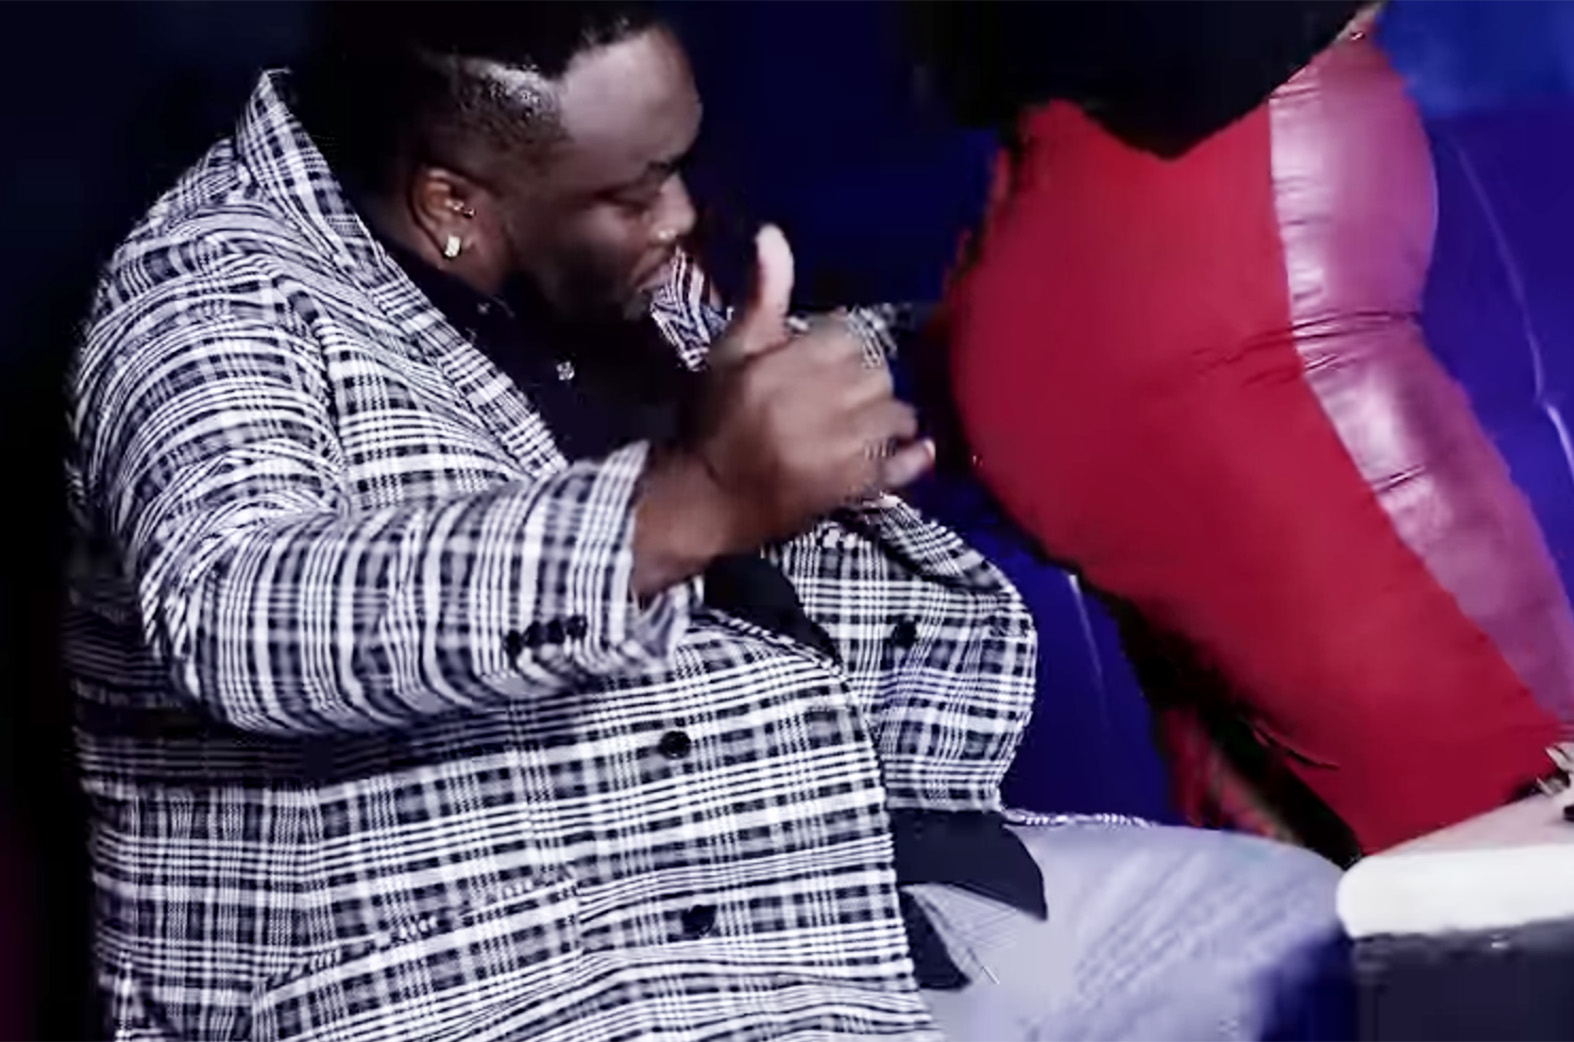 Video Premiere: Who's That Girl by Donzy feat. Piesie, B4Bonah, Flyboy, Obra, Kwesi Arthur & Dr. Cryme